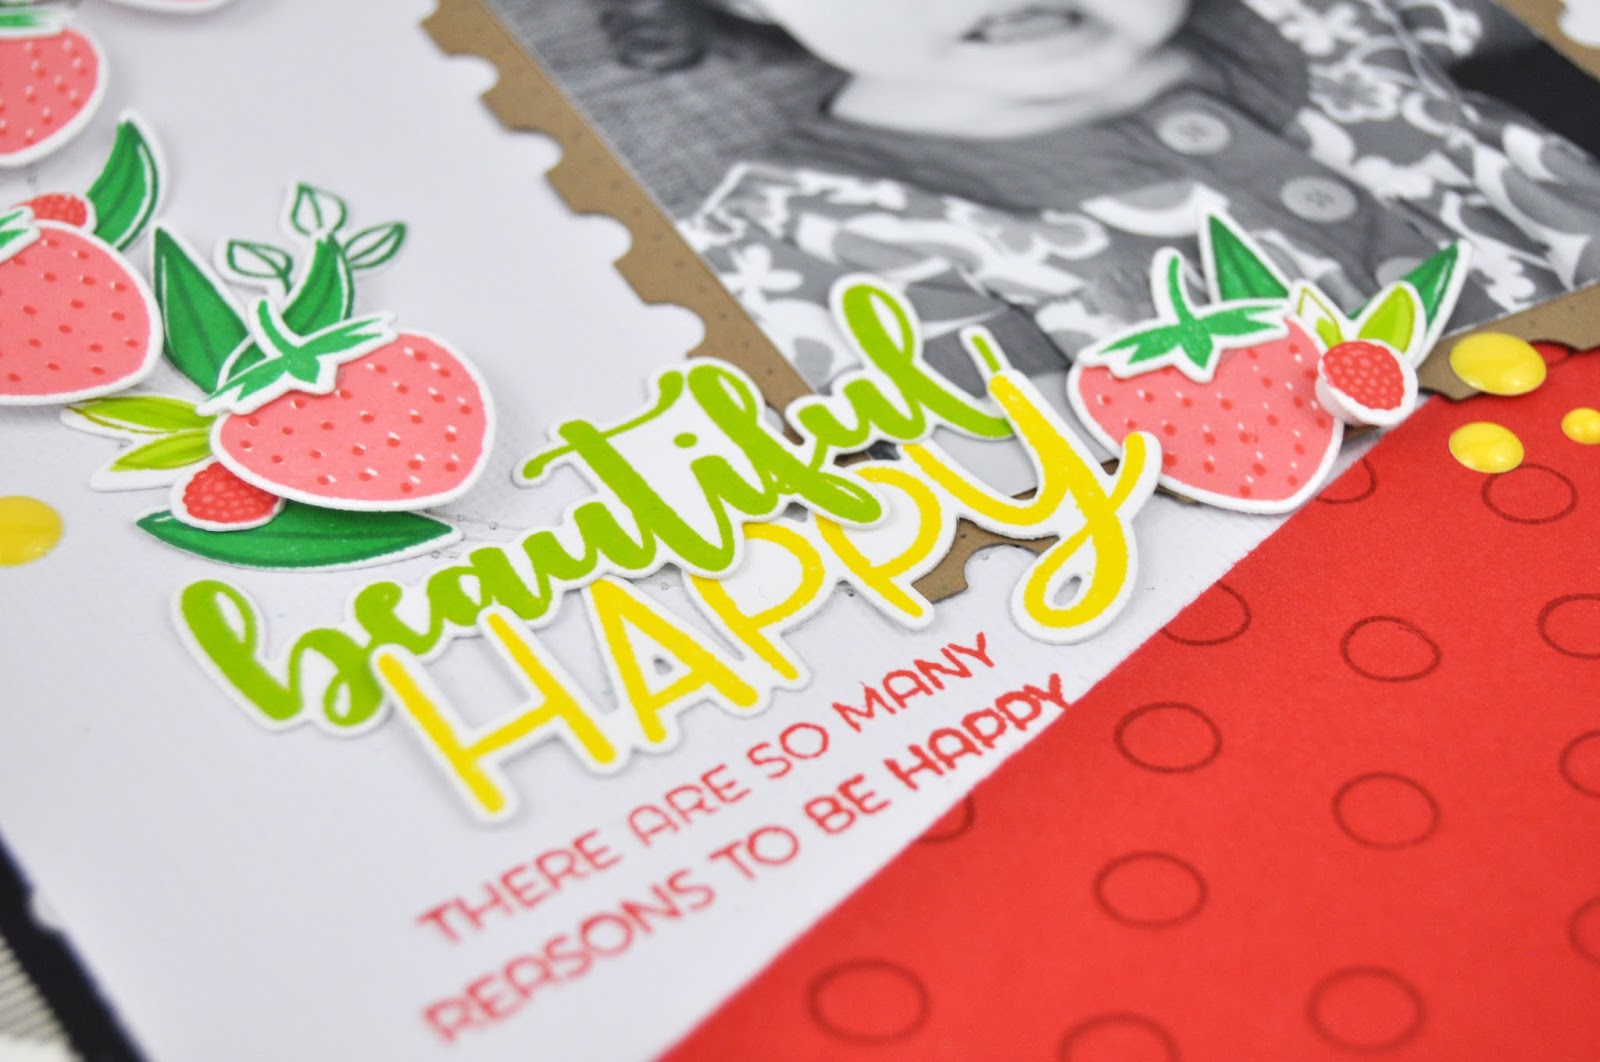 Winnie and Walter: stamped scrapbooking layout using strawberries, and leaves. Scrapbooking layout by Jen Gallacher for Winnie and Walter. #stamping #scrapbooking #scrapbooklayout #jengallacher #winnieandwalter